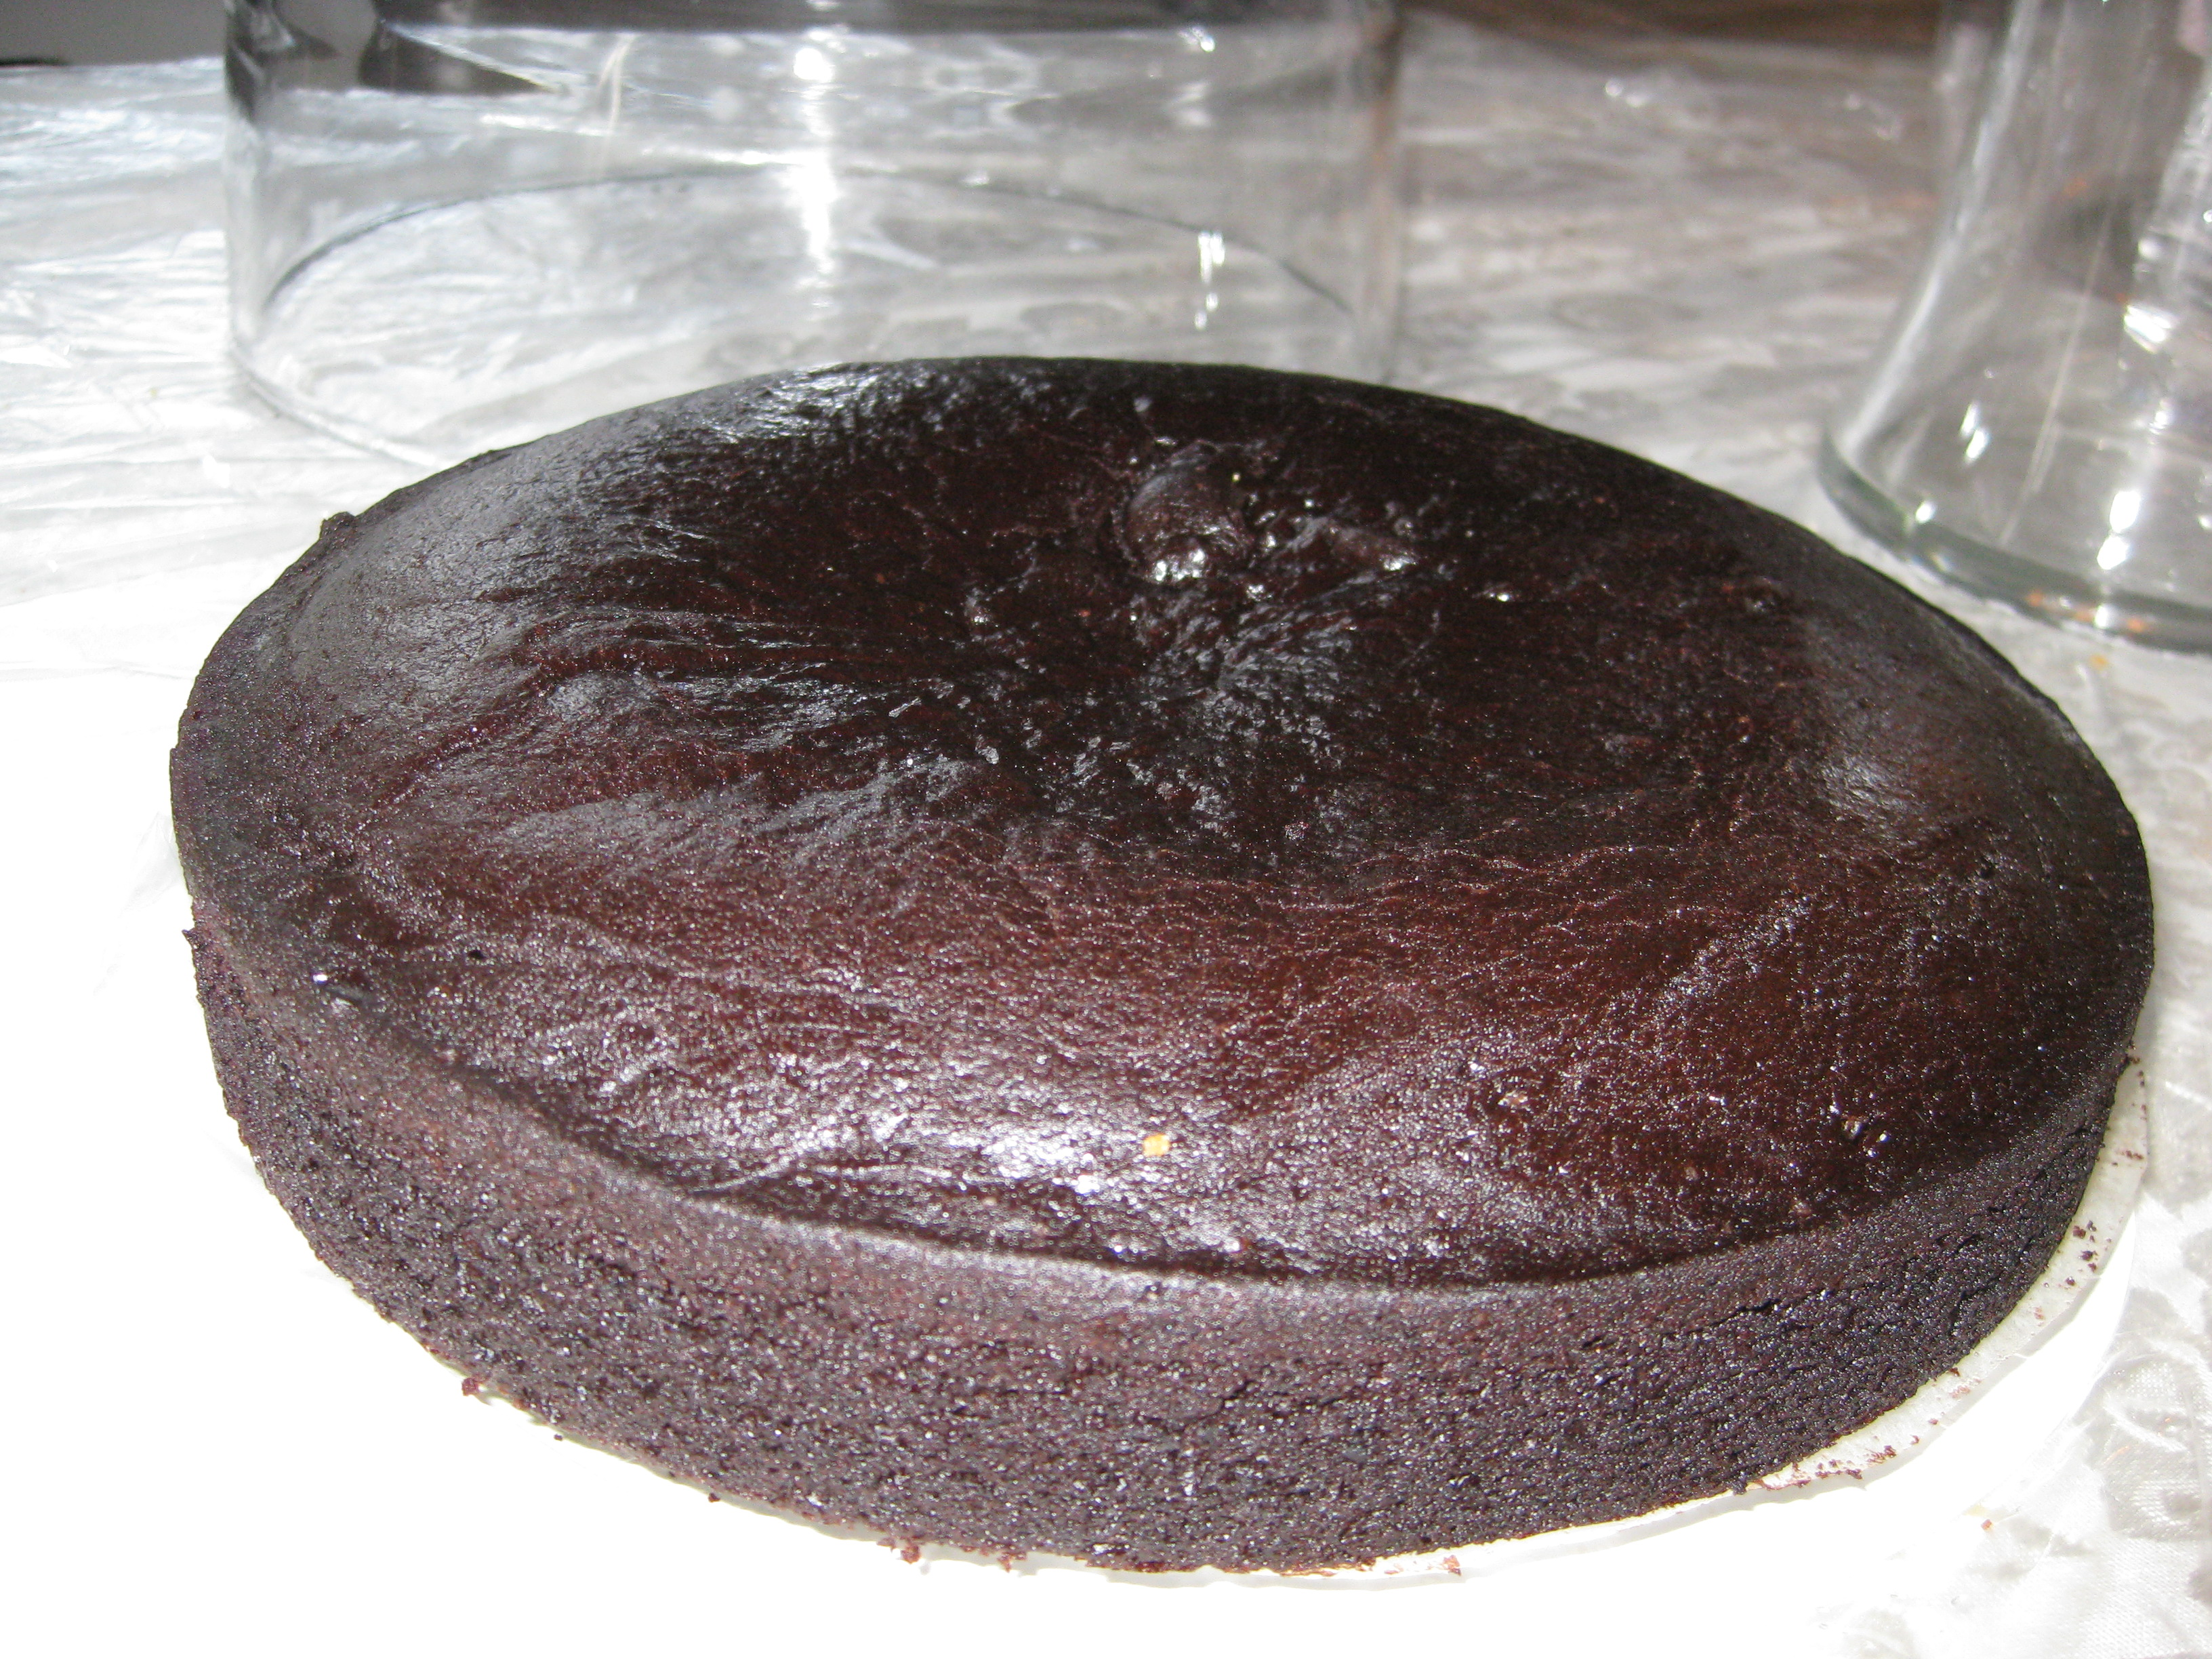 Laurie Colwin and Karen Edwards's Chocolate Cake | Pragmatic Attic